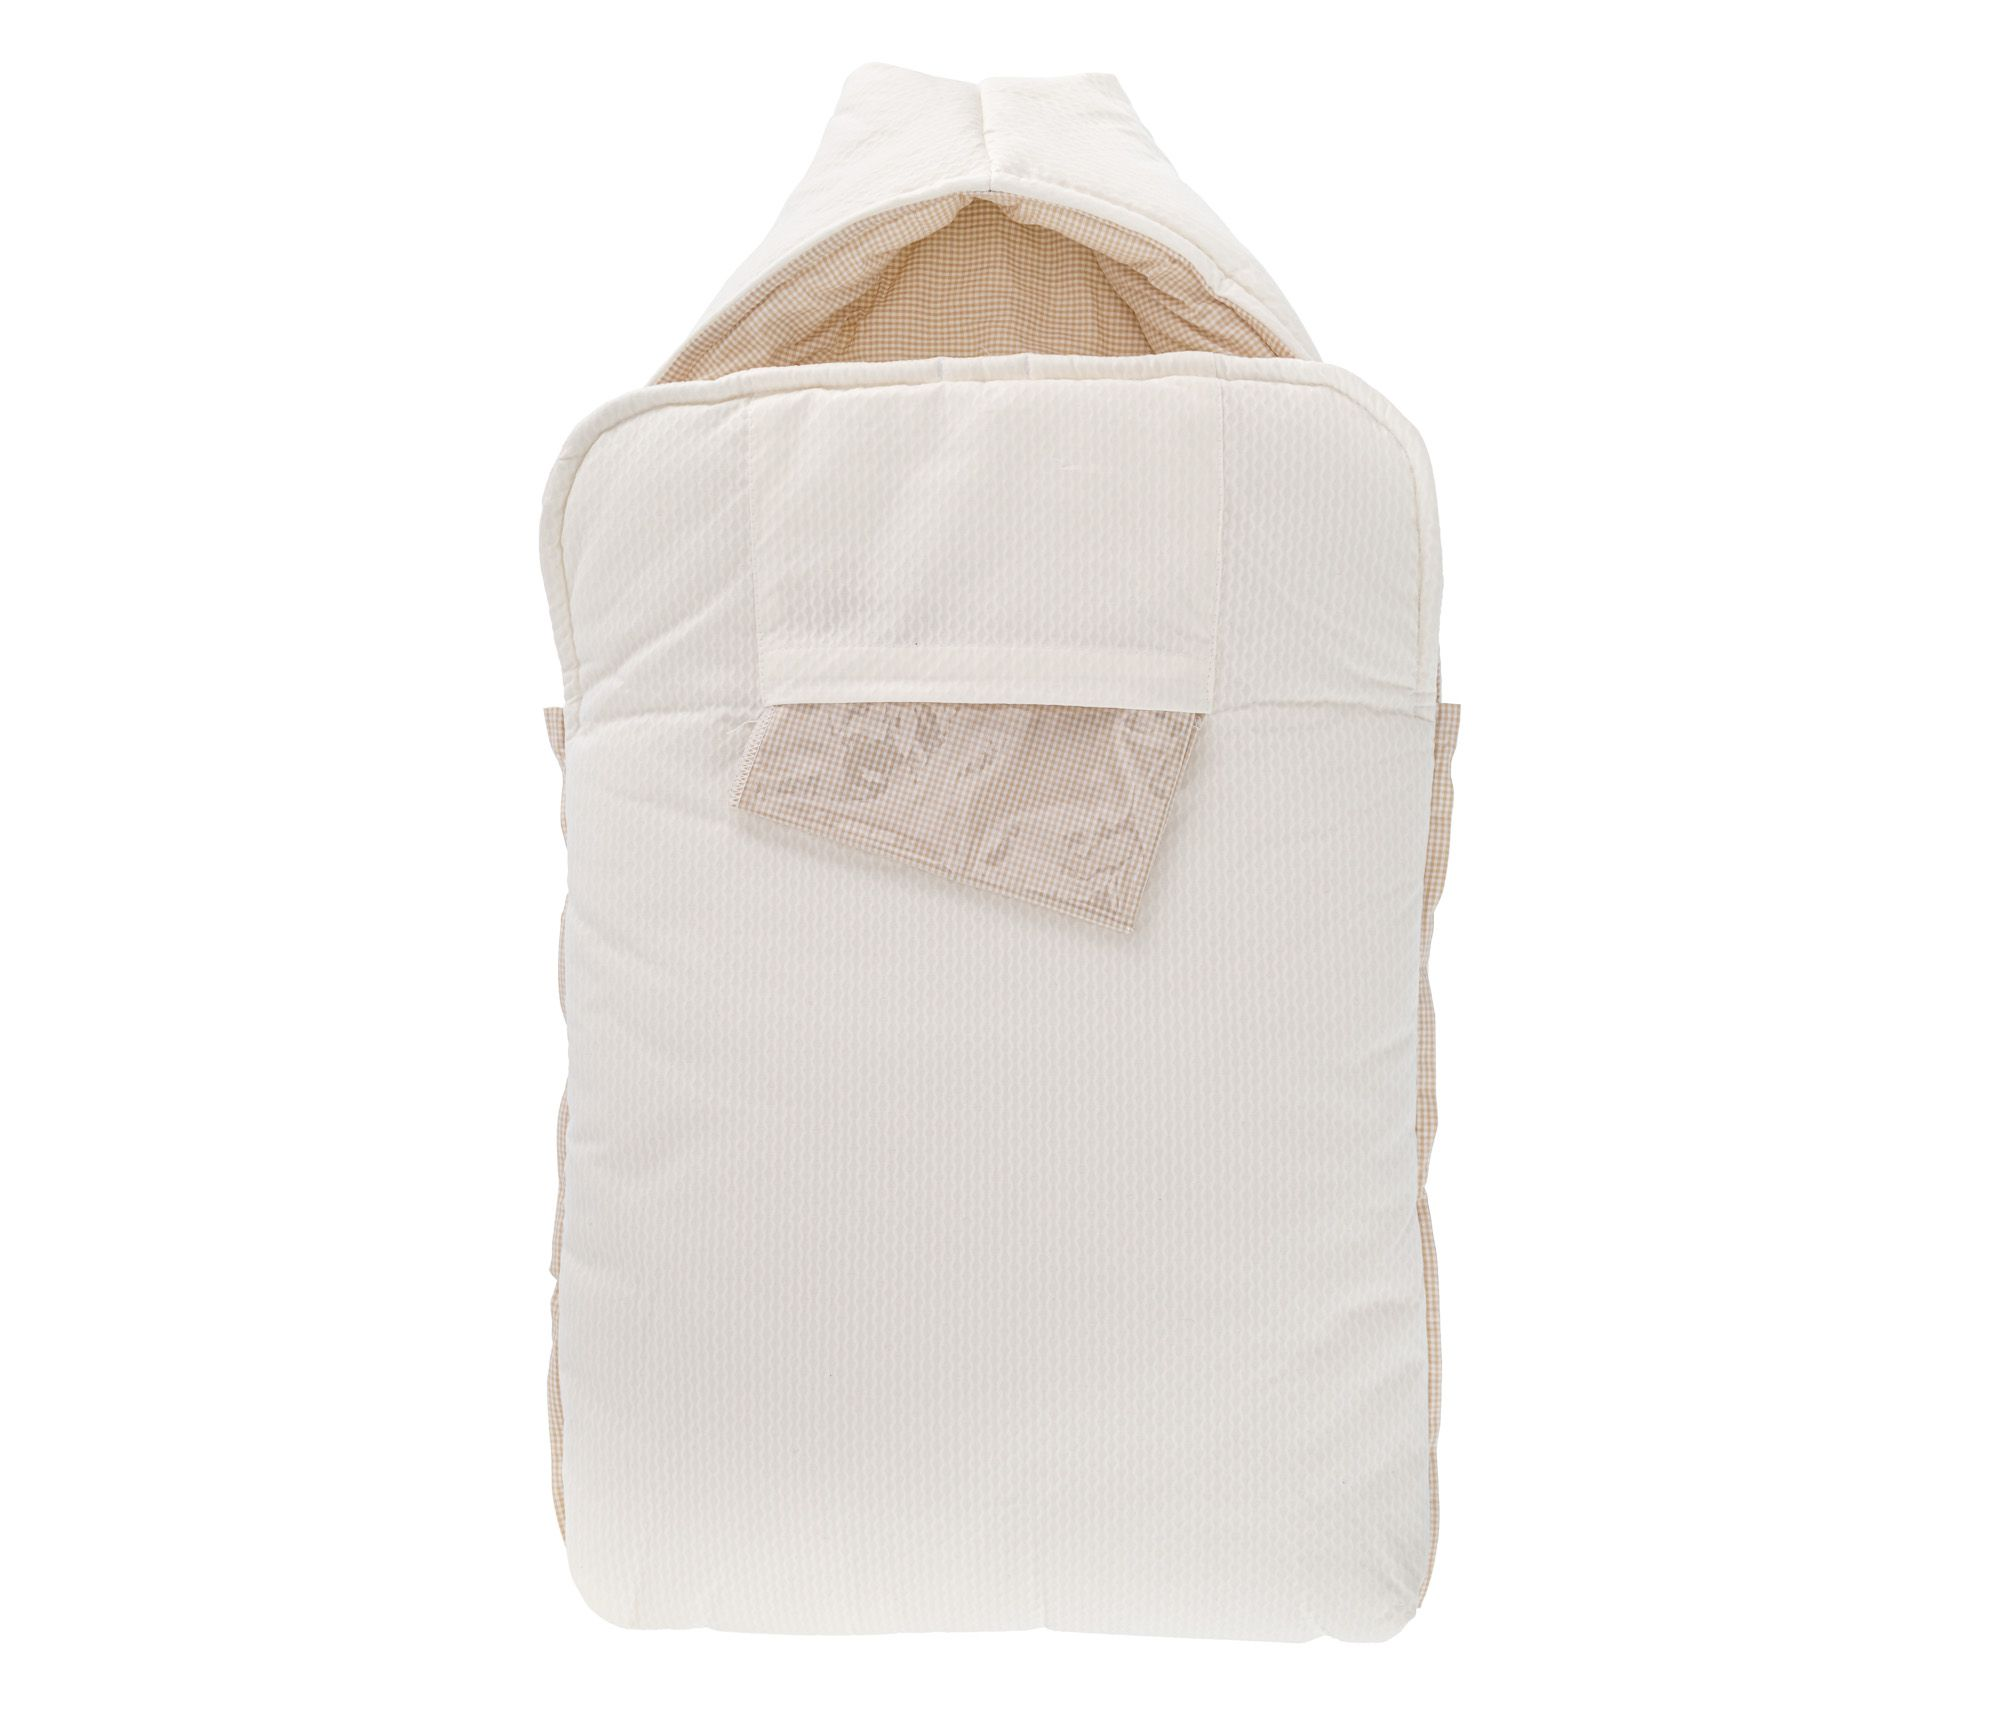 Sleep Bag Baby Selva Bege